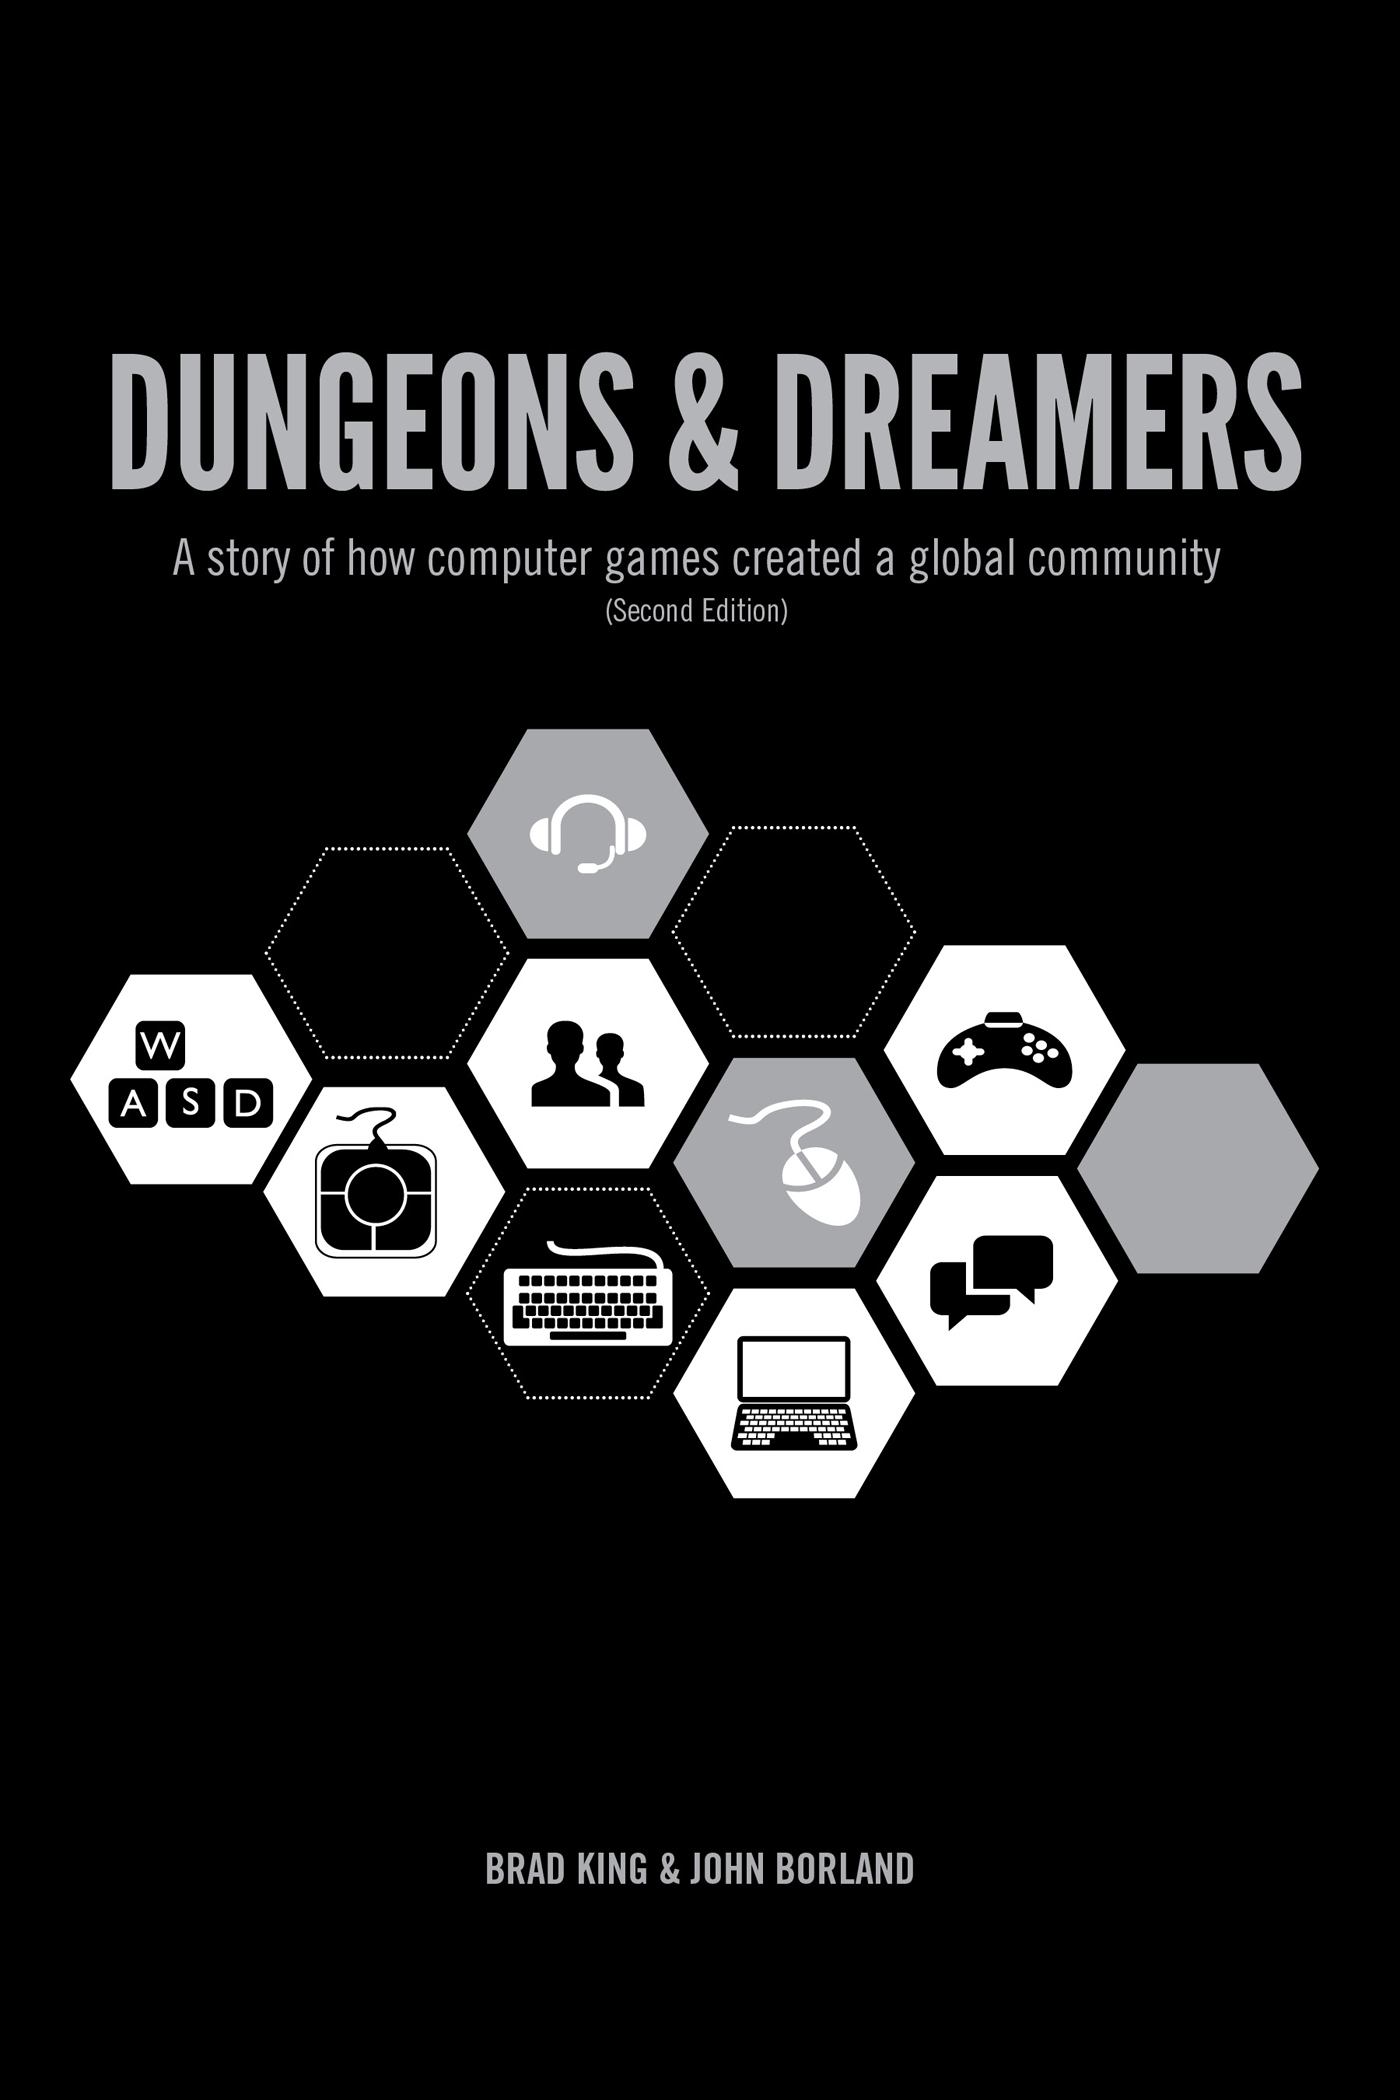 Dungeons & Dreamers @ Amazon